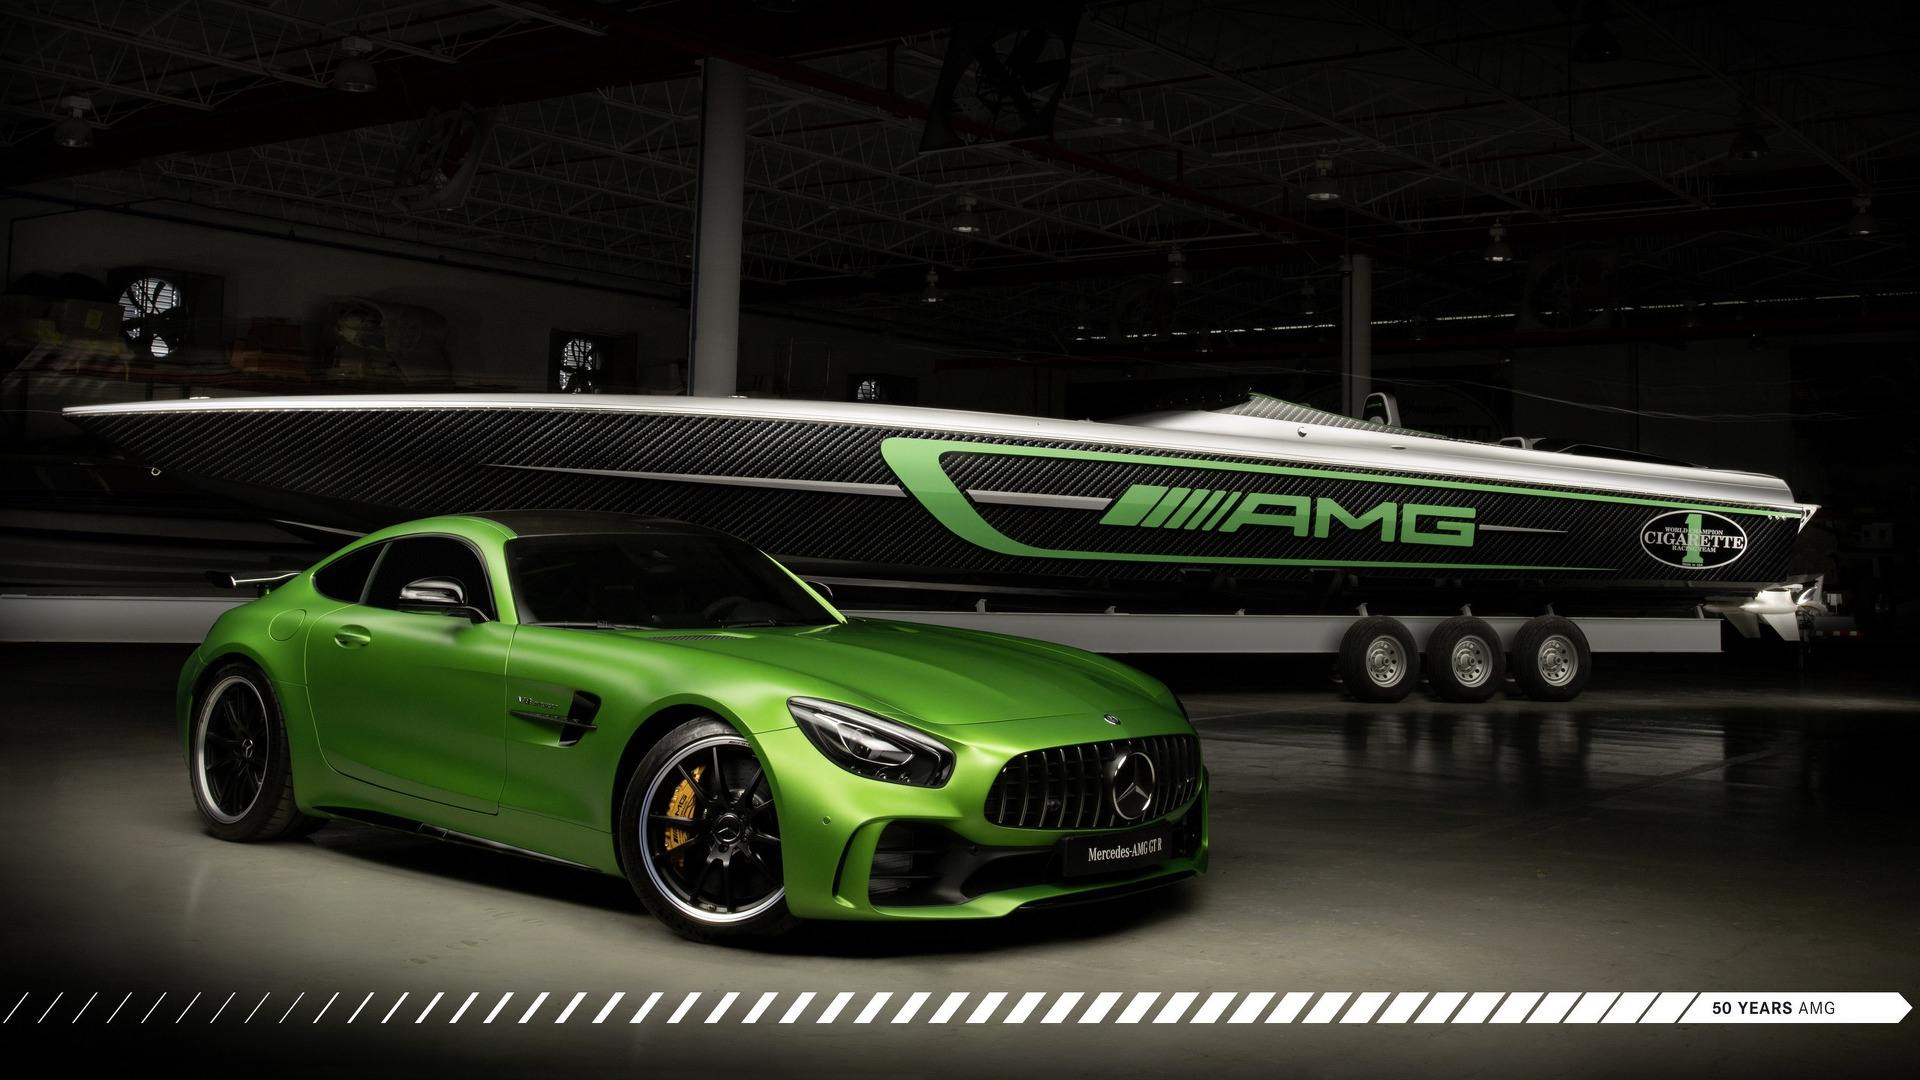 Permalink to Mercedes Benz Amg Gtr Price